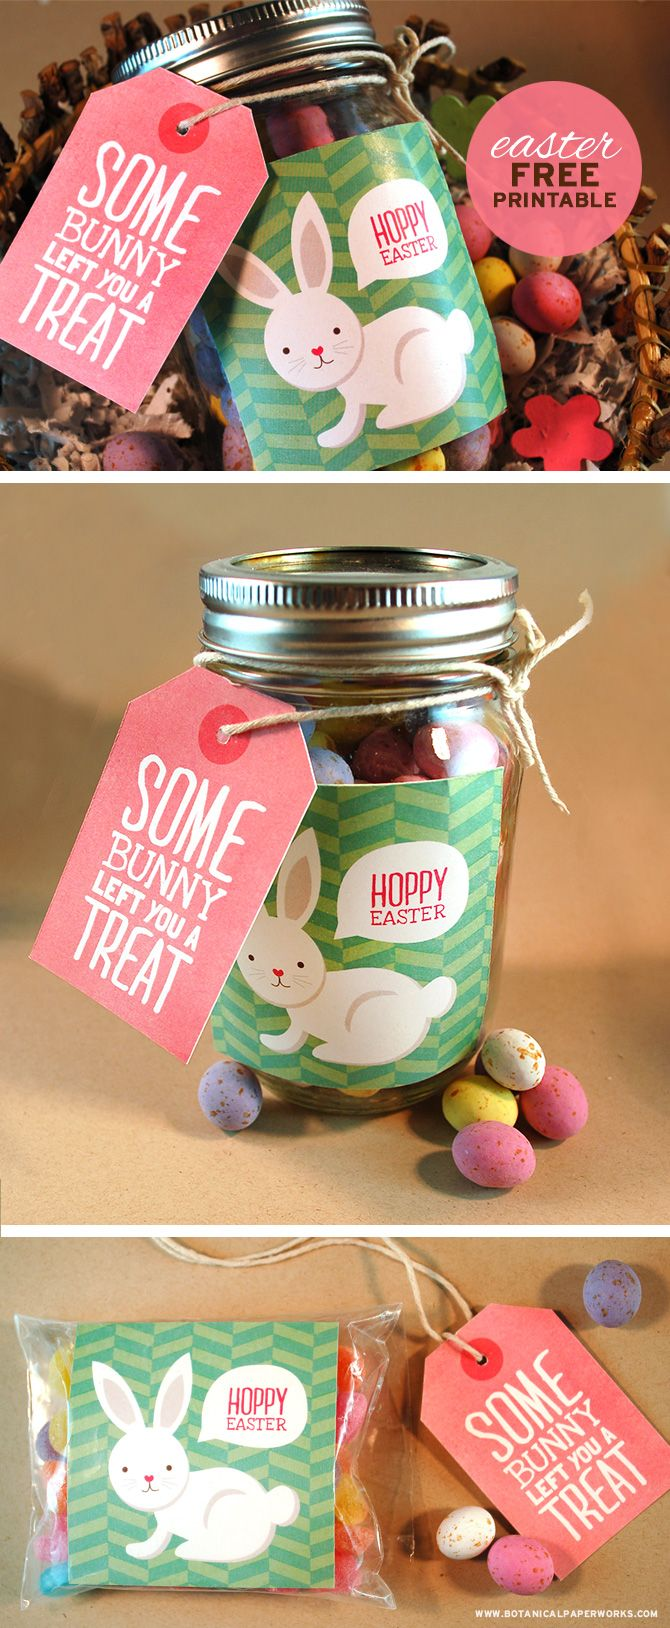 215 best easter gift ideas images on pinterest easter easter free printable easter treat tags labels negle Gallery